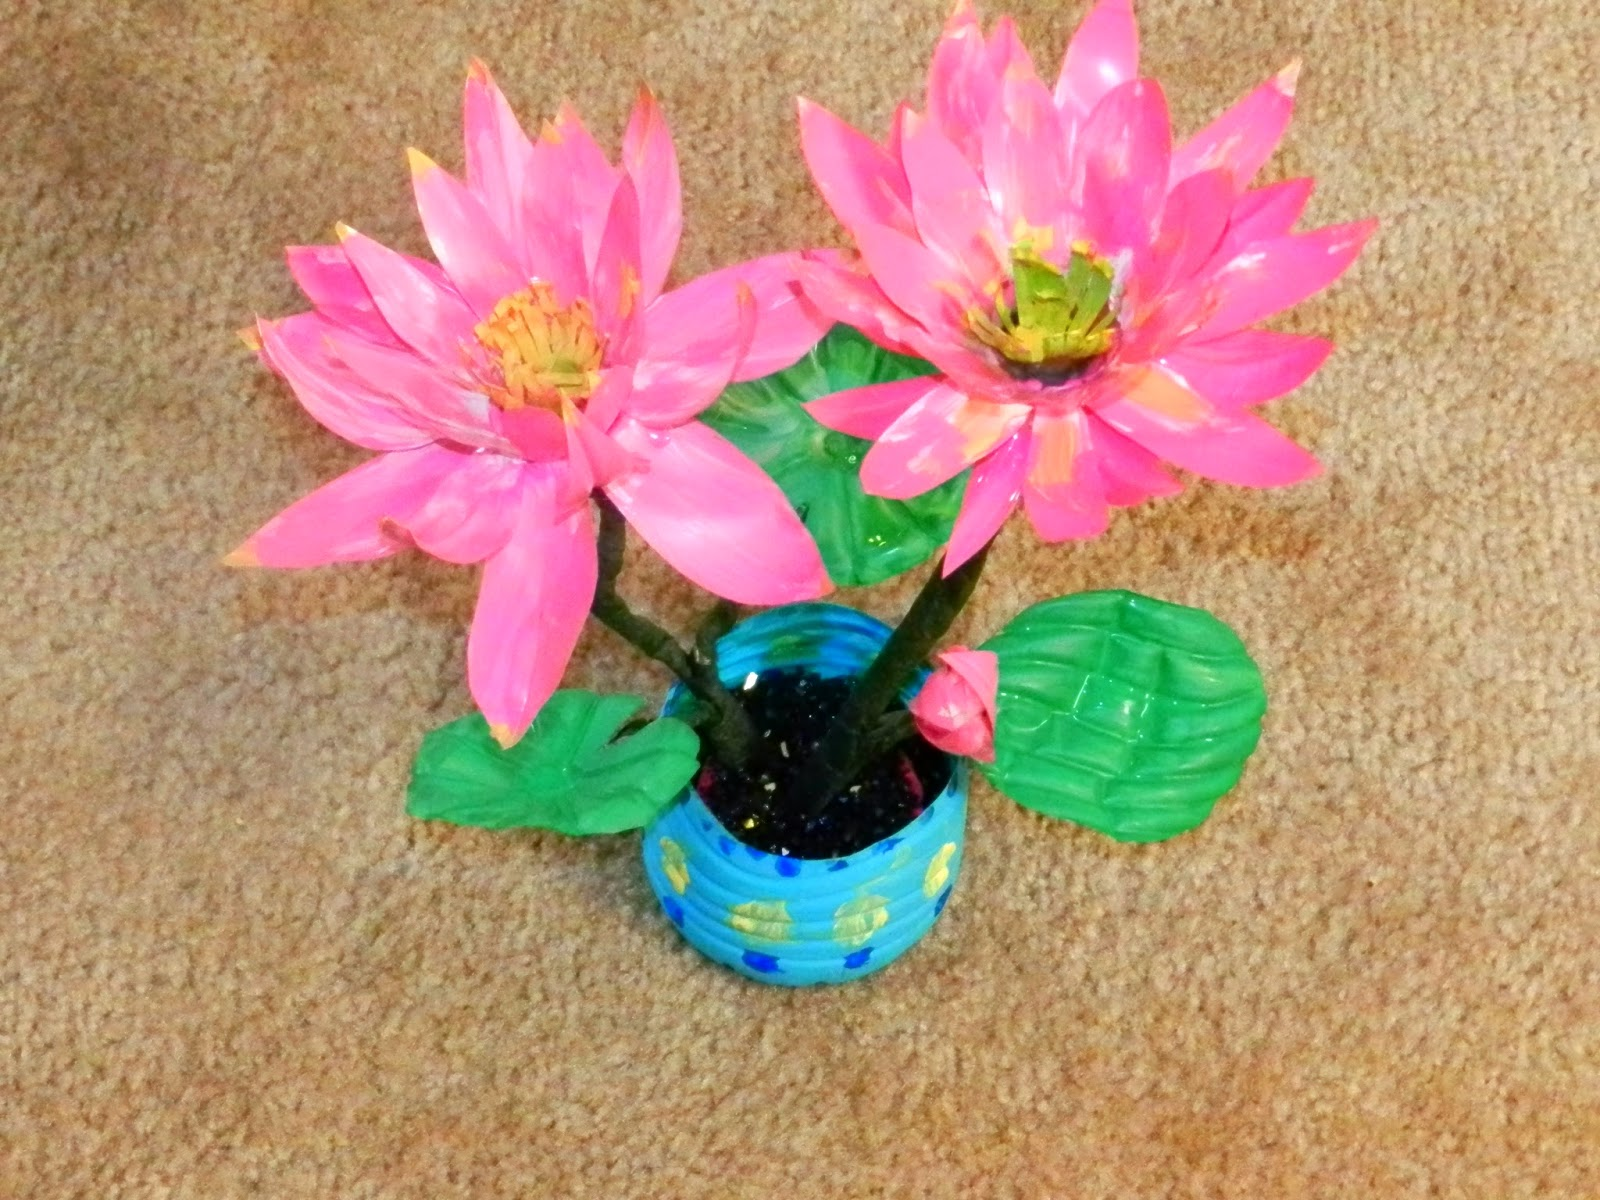 Creative diy crafts recycled diy lotus flowers with for Waste crafts making